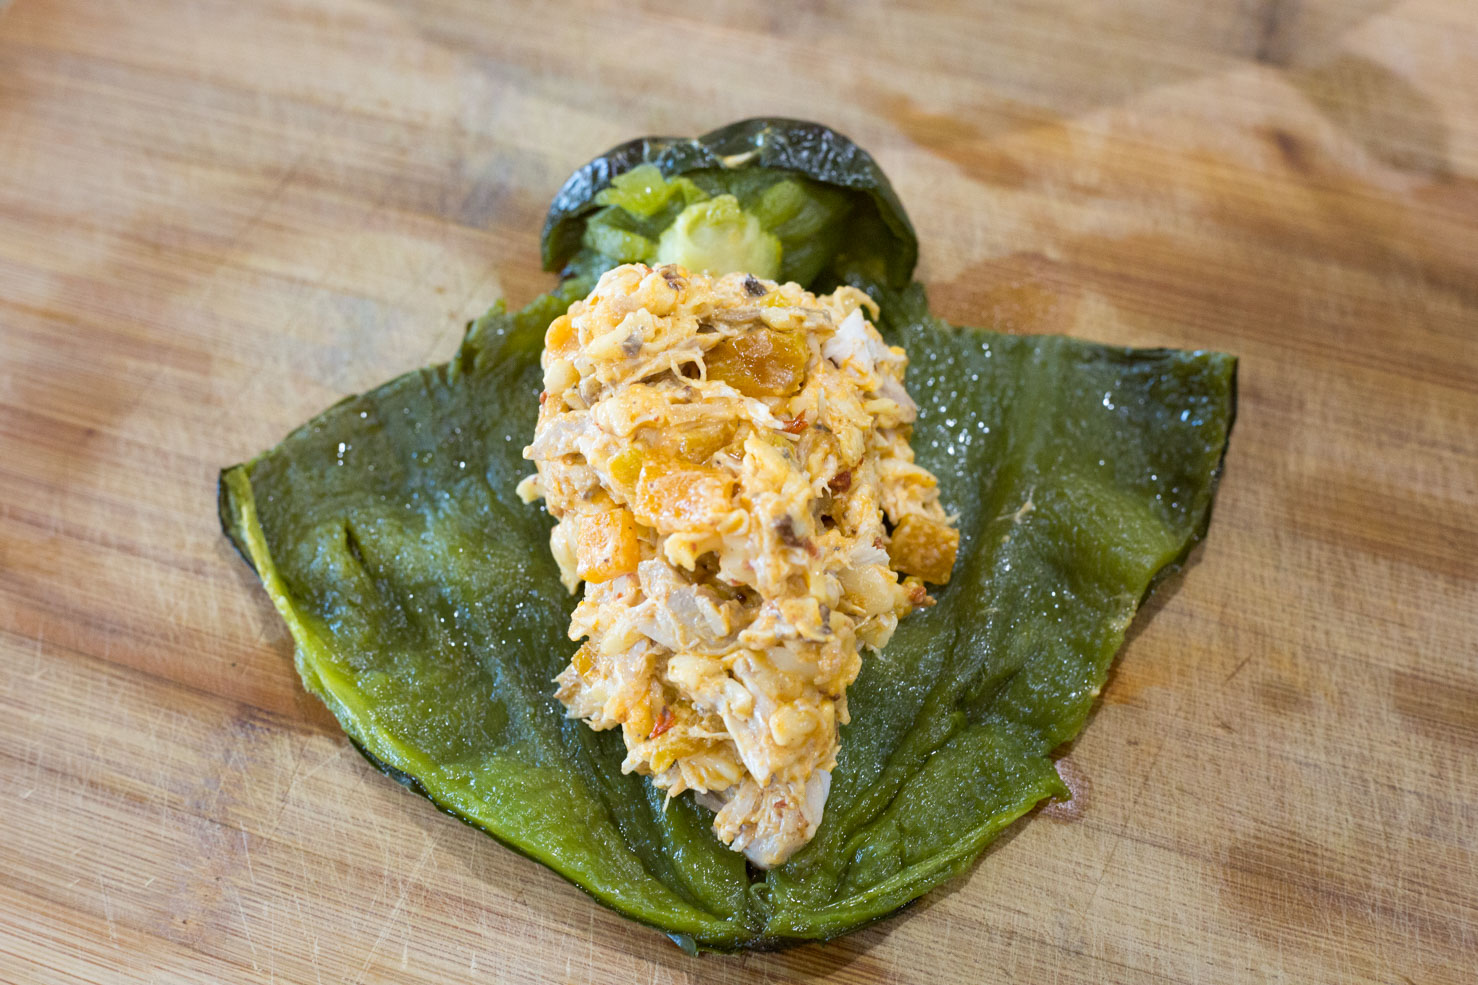 Stuffed peppers- filled with filling, and laid out to demonstrate the T-cut